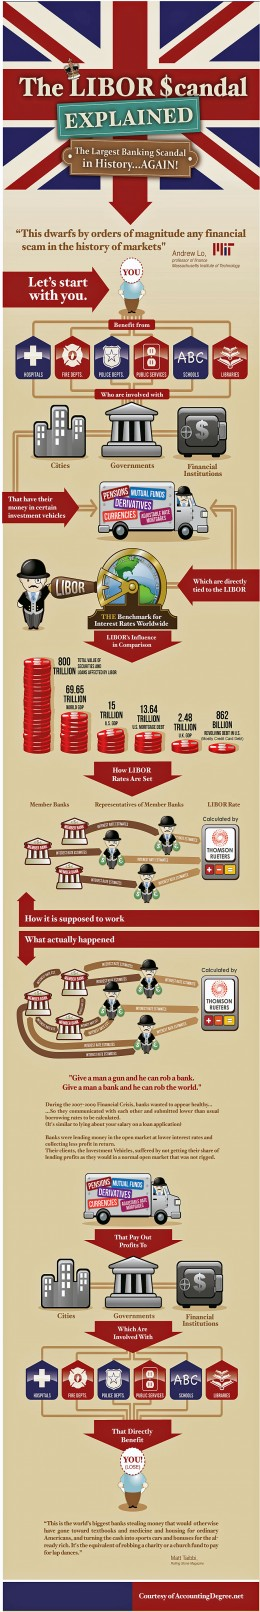 This diagram shows at a glance how the international banking sector is supposed to work and how it has actually unfolded in the latest international banking scandal.